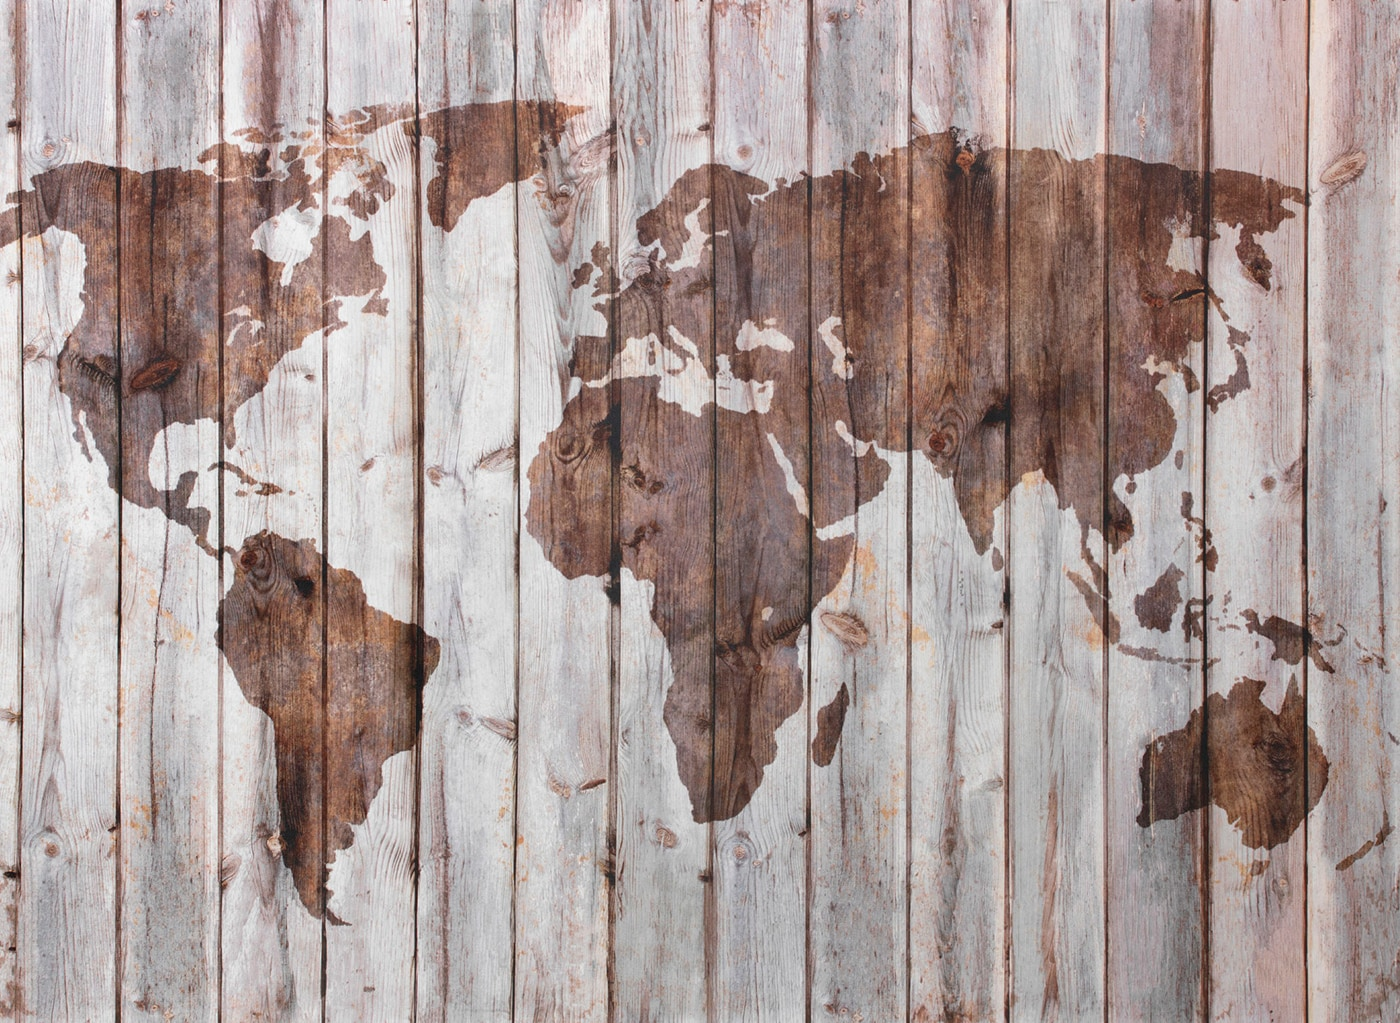 A silhouette of the world on a wooden wall, symbolizing that IKEA is a global brand with many products made from wood.